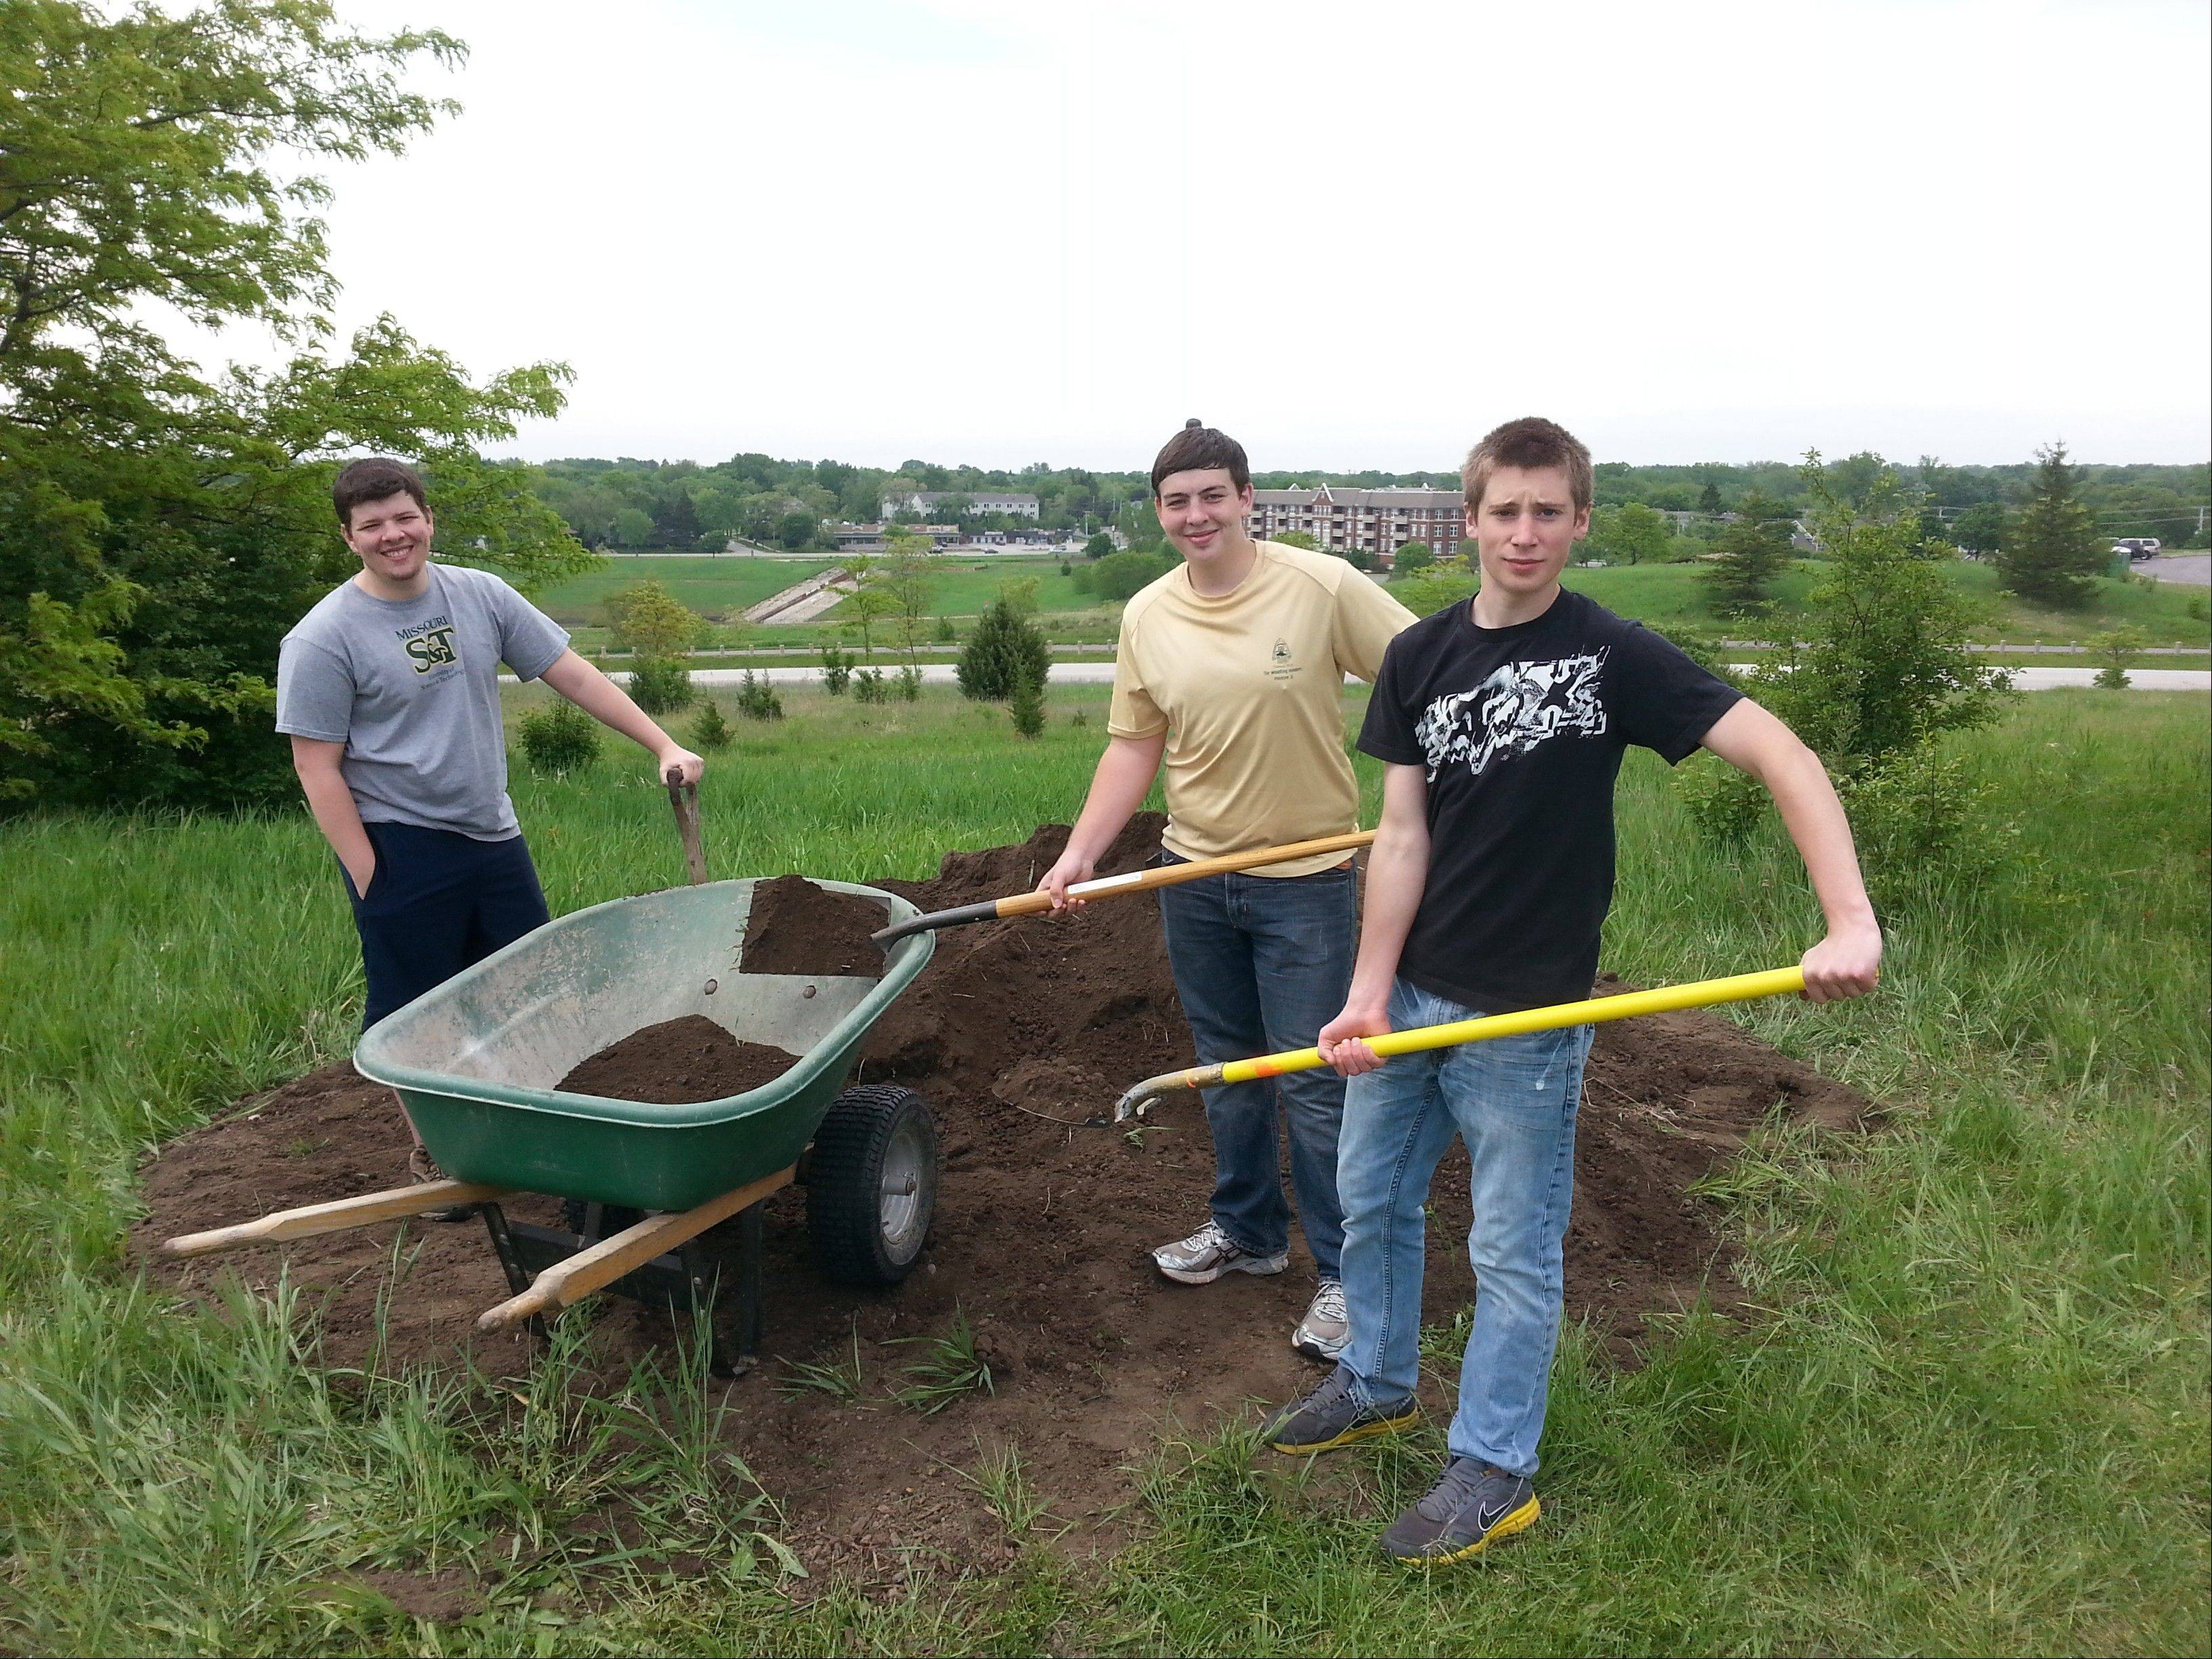 Troop 335 Eagle Scout candidate Casey Wagner, pictured, far right, along with fellow scouts, work at the Margreth Riemer Reservoir in Palatine helping ready the disc golf course for expansion.